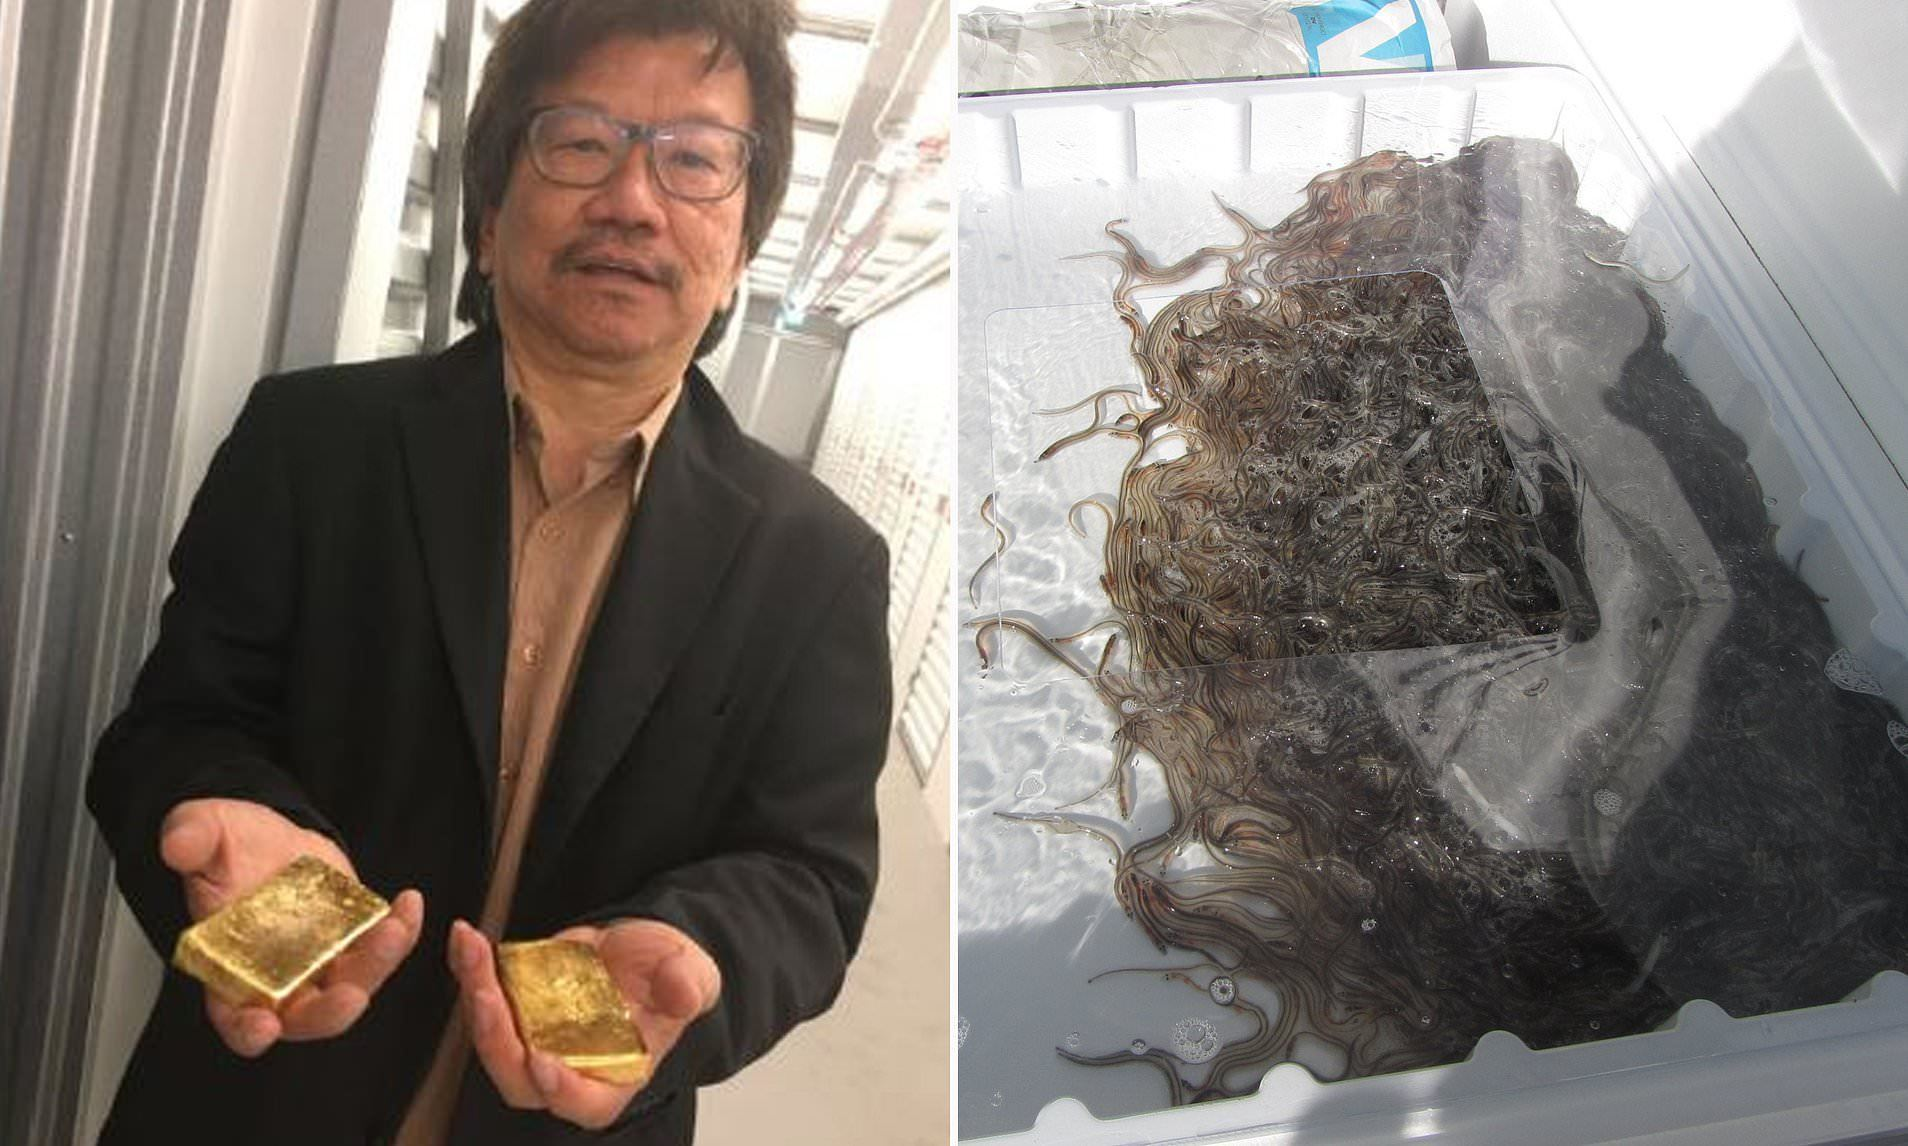 Seafood salesman smuggled £53m worth of live eels out of UK